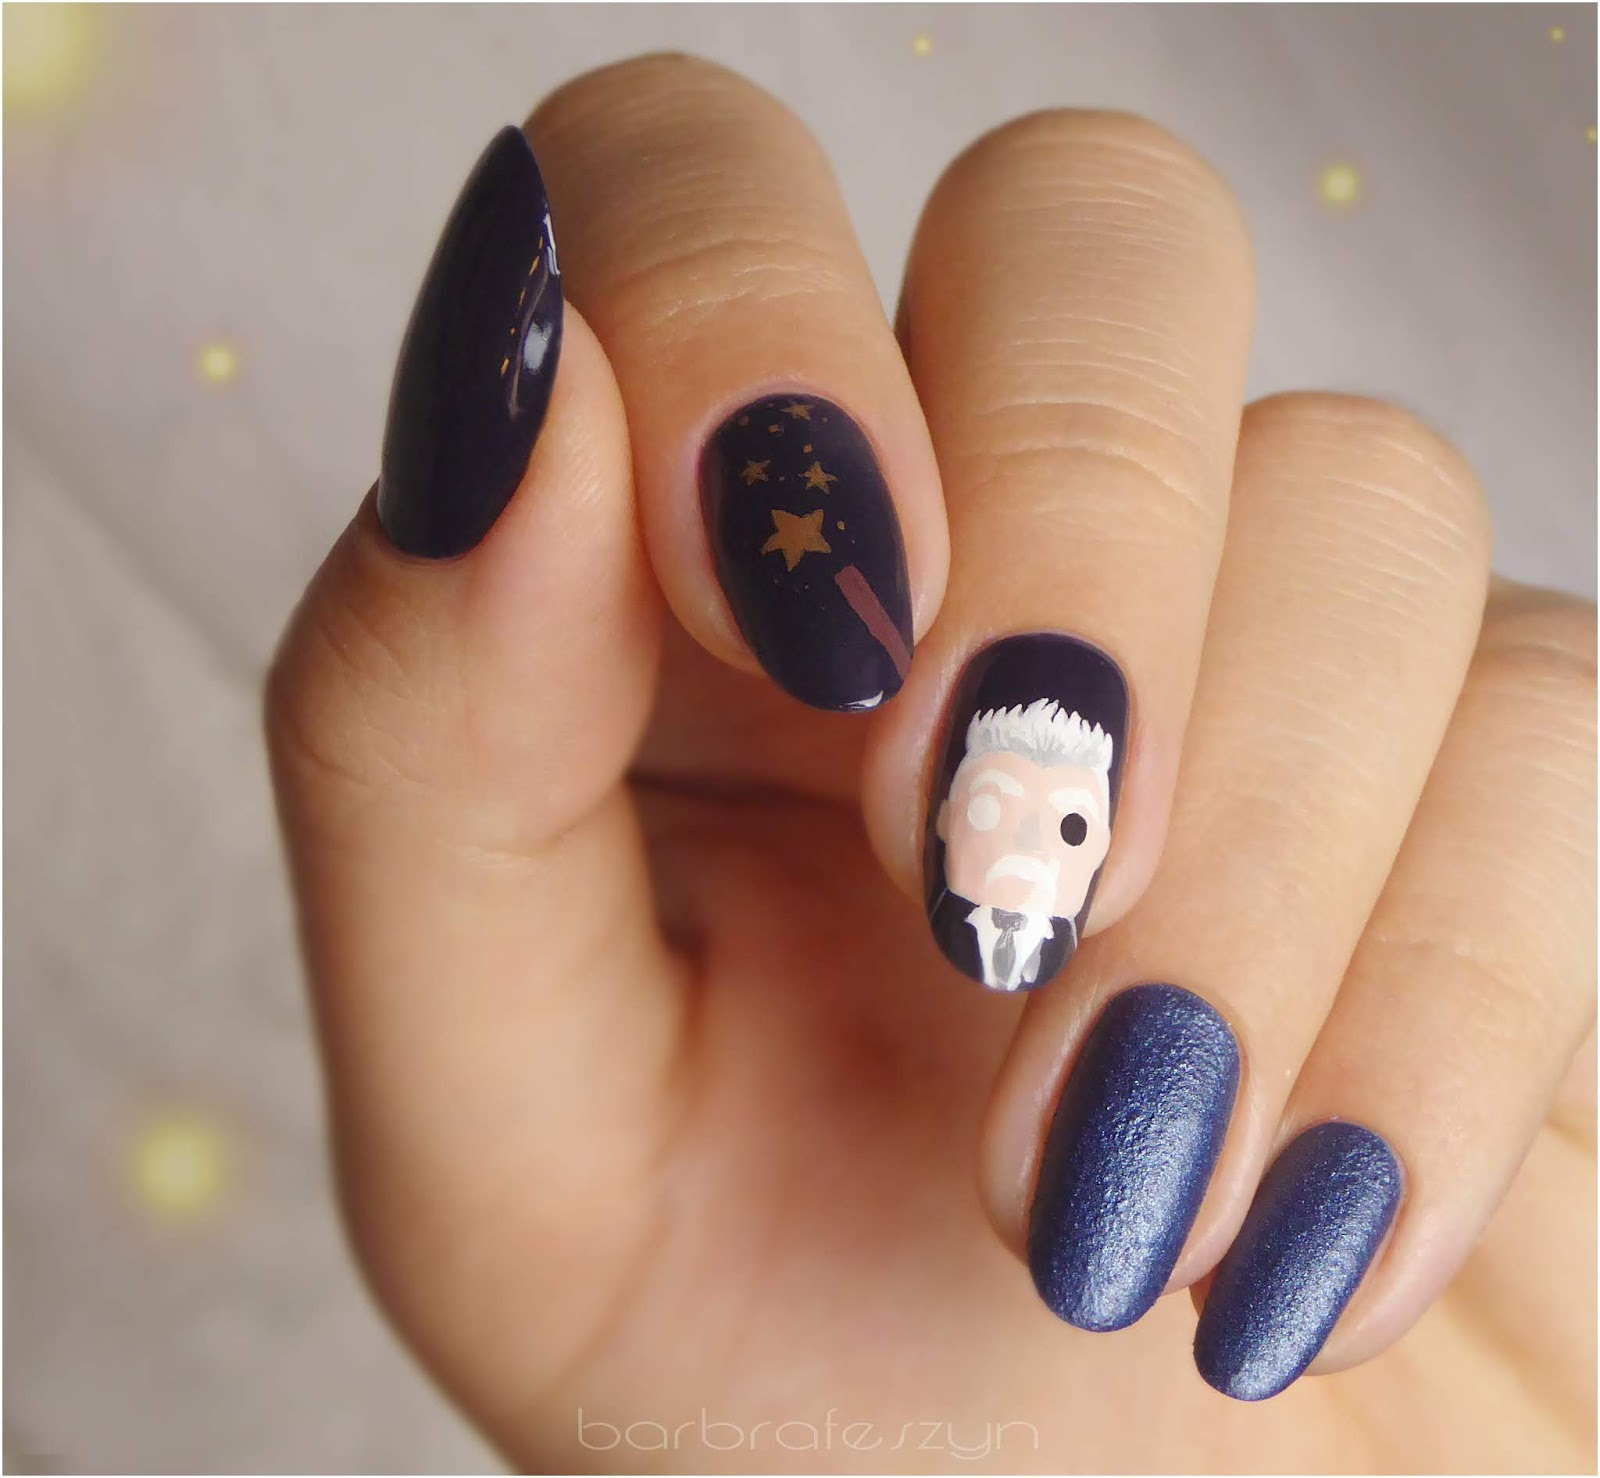 """My nails for premiere of """"Fantastic Beasts: The Crimes of Grindelwald """""""